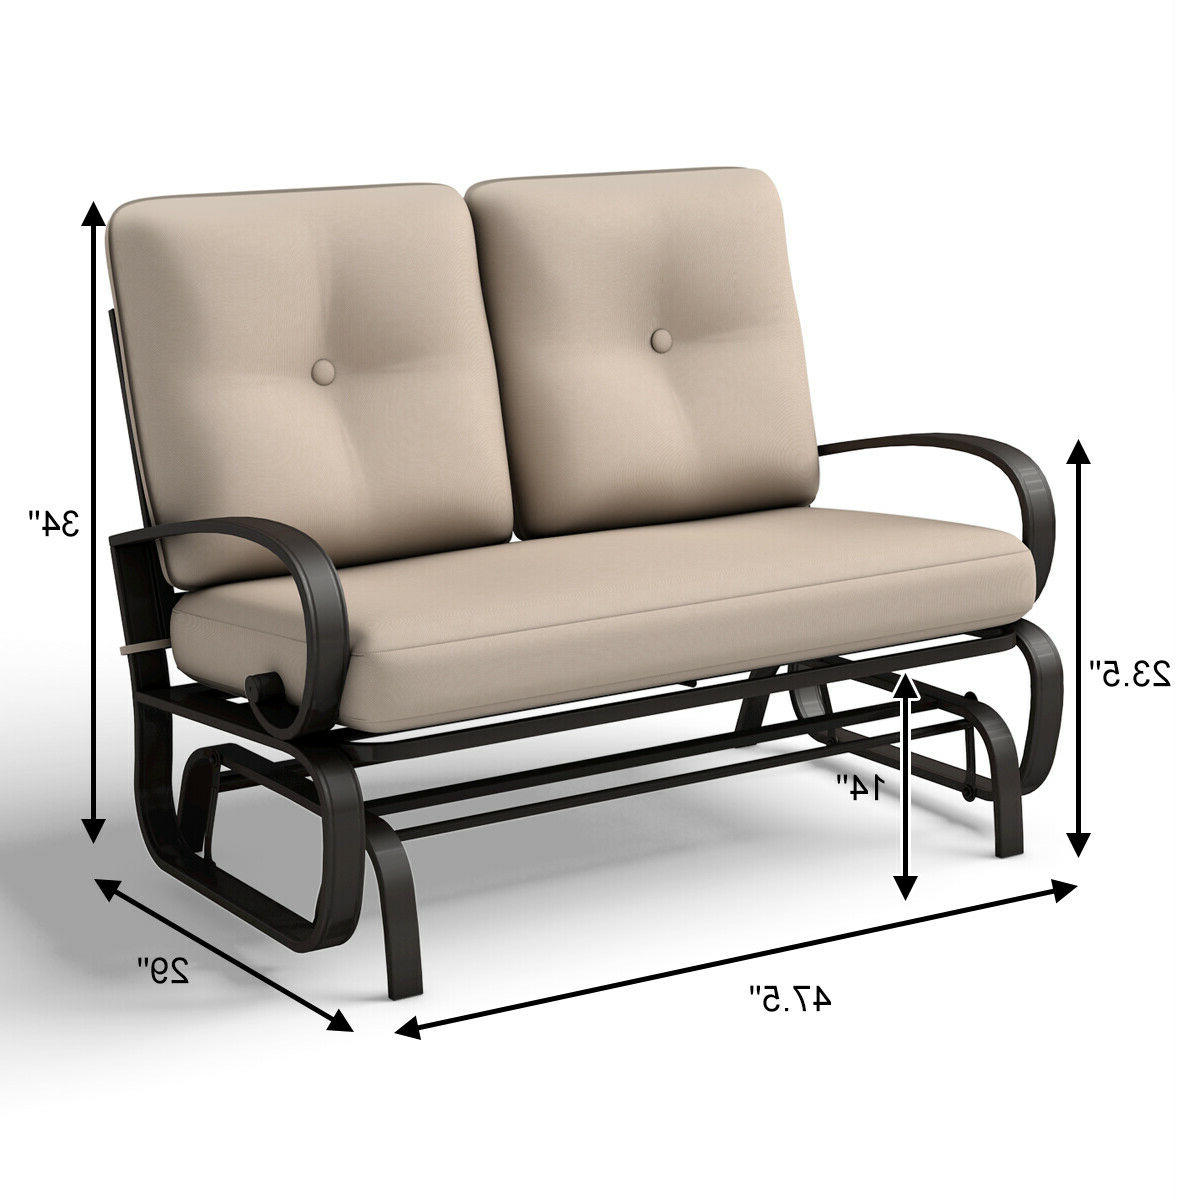 Outdoor Retro Metal Double Glider Benches Regarding Favorite Costway Glider Outdoor Patio Rocking Bench Loveseat (Gallery 18 of 30)